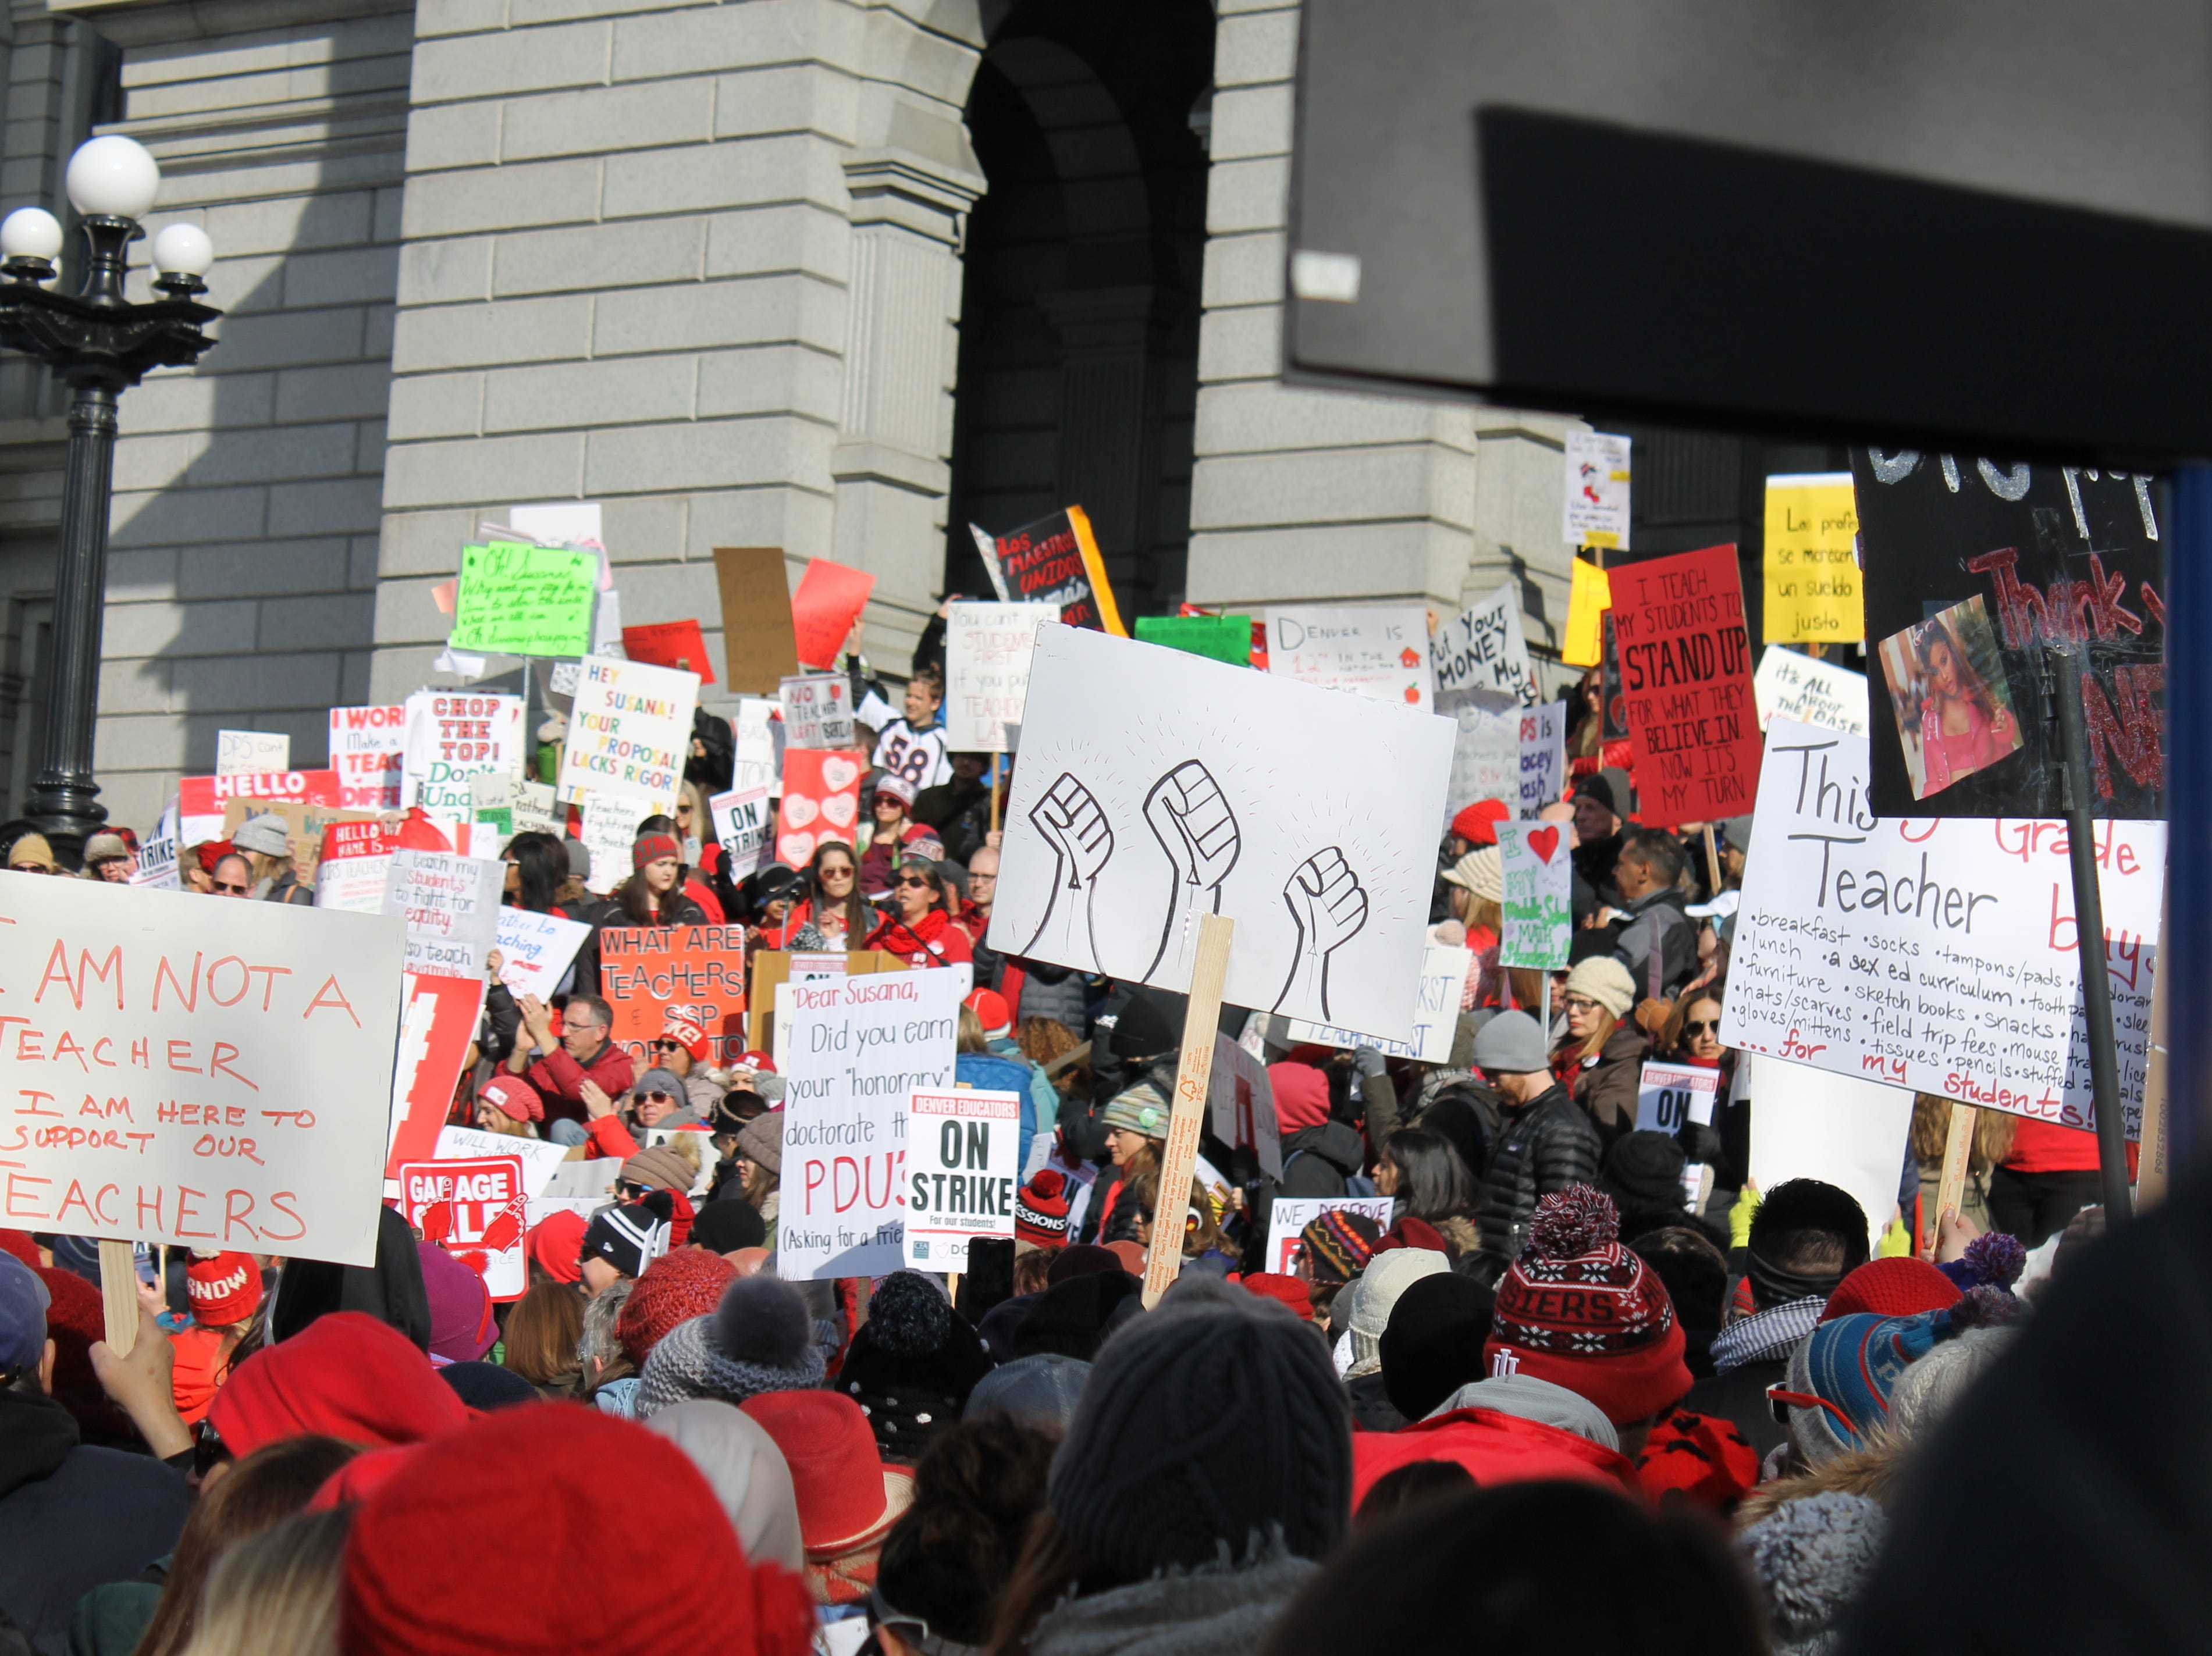 Denver Public Schools teachers are calling for a more transparent, fair salary system that prioritizes base pay over incentives.